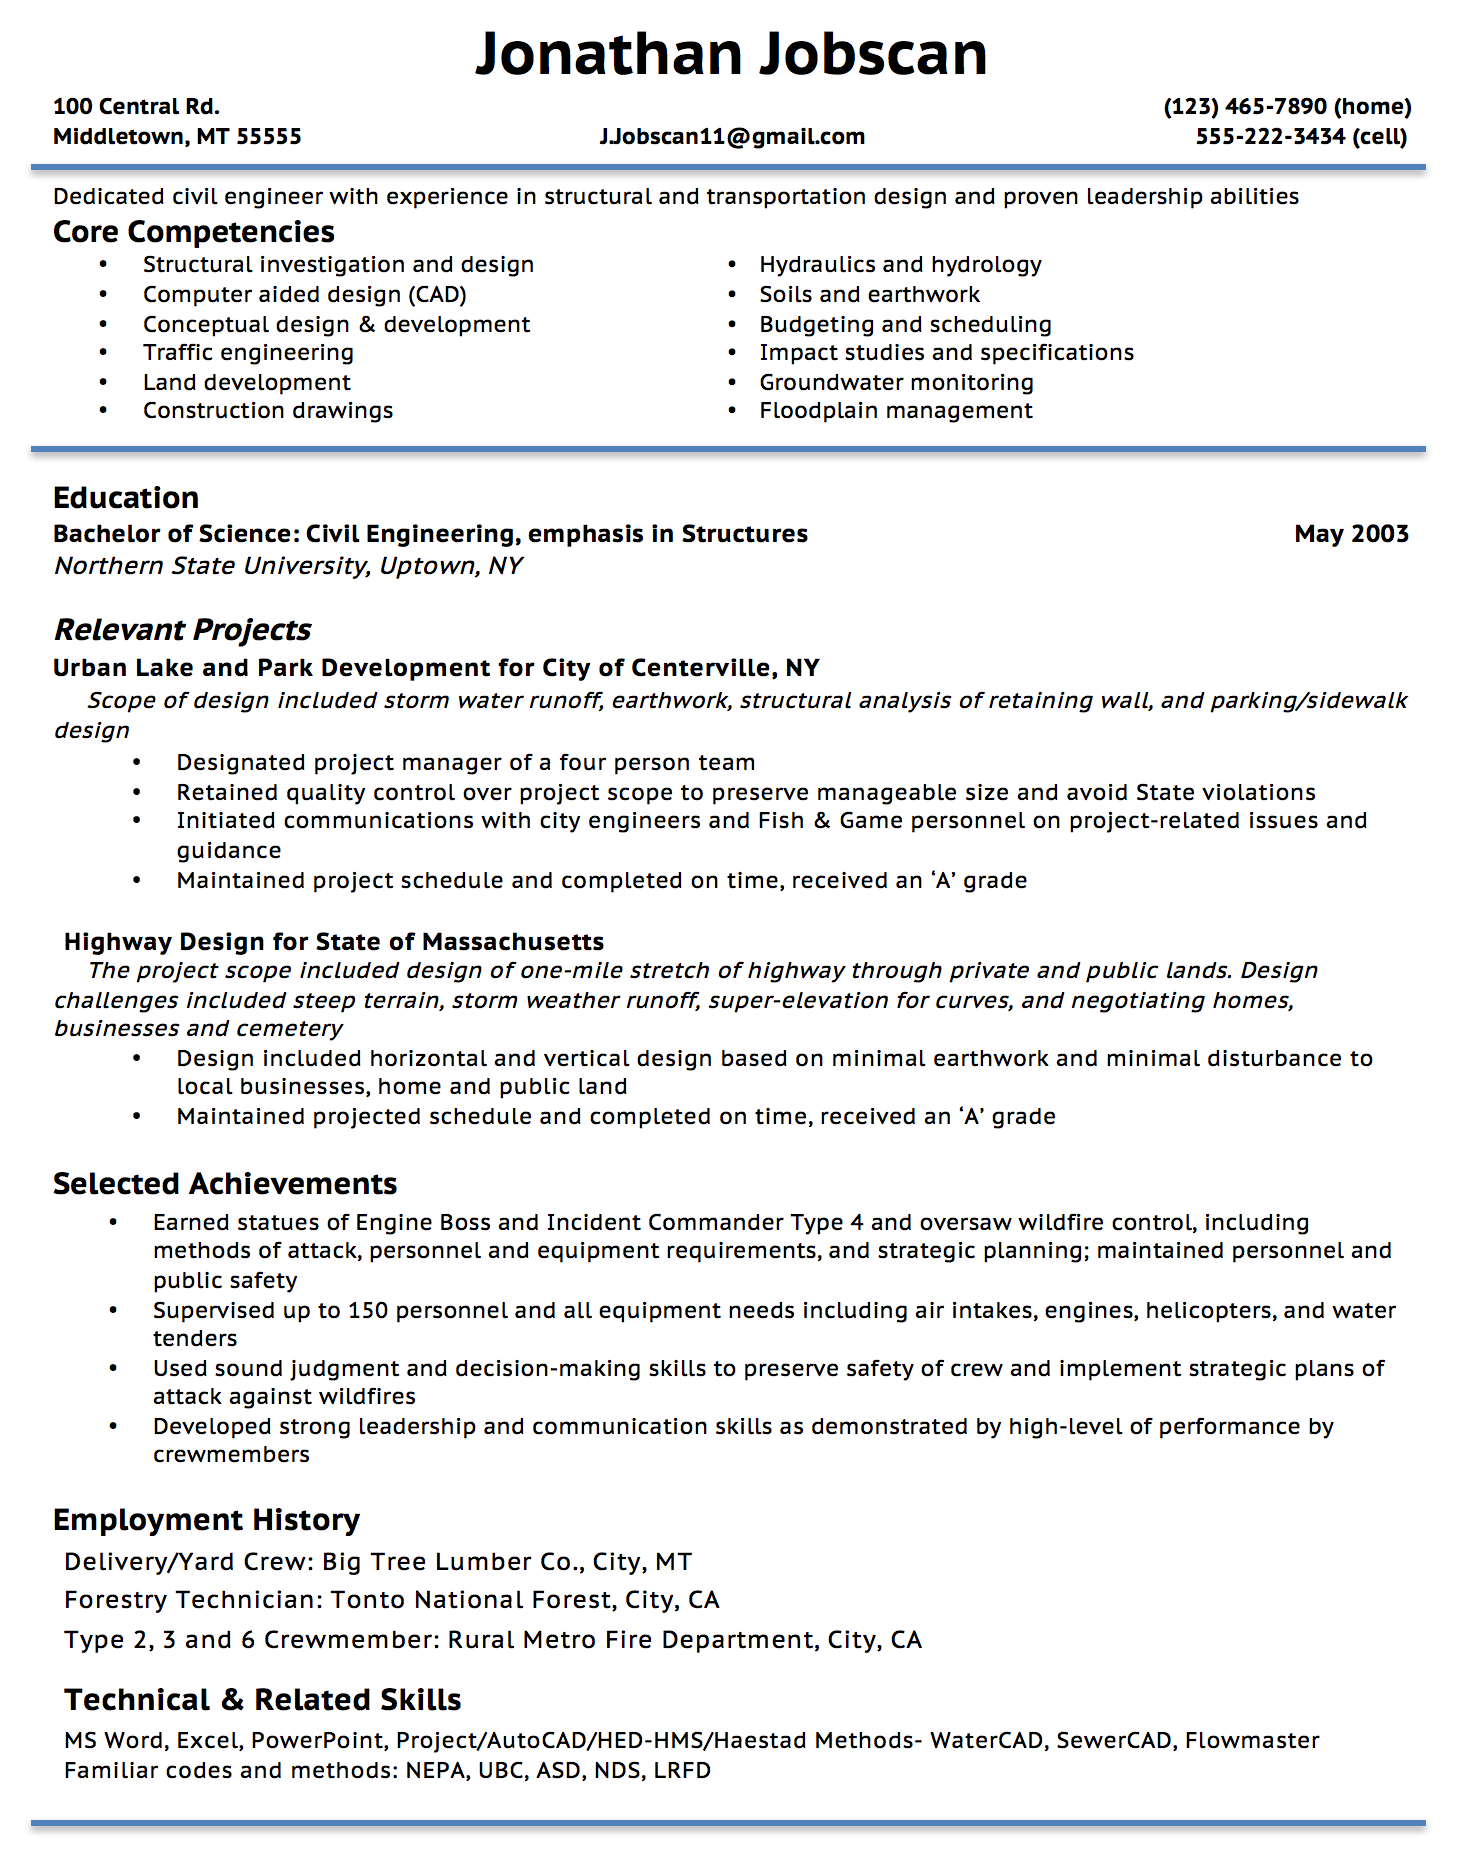 Opposenewapstandardsus  Terrific Resume Writing Guide  Jobscan With Lovable Example Of A Functional Resume Format With Awesome Illustrator Resume Templates Also Microsoft Templates Resume In Addition Printable Resume Templates And Help With My Resume As Well As Electronic Technician Resume Additionally Resume Key Skills From Jobscanco With Opposenewapstandardsus  Lovable Resume Writing Guide  Jobscan With Awesome Example Of A Functional Resume Format And Terrific Illustrator Resume Templates Also Microsoft Templates Resume In Addition Printable Resume Templates From Jobscanco